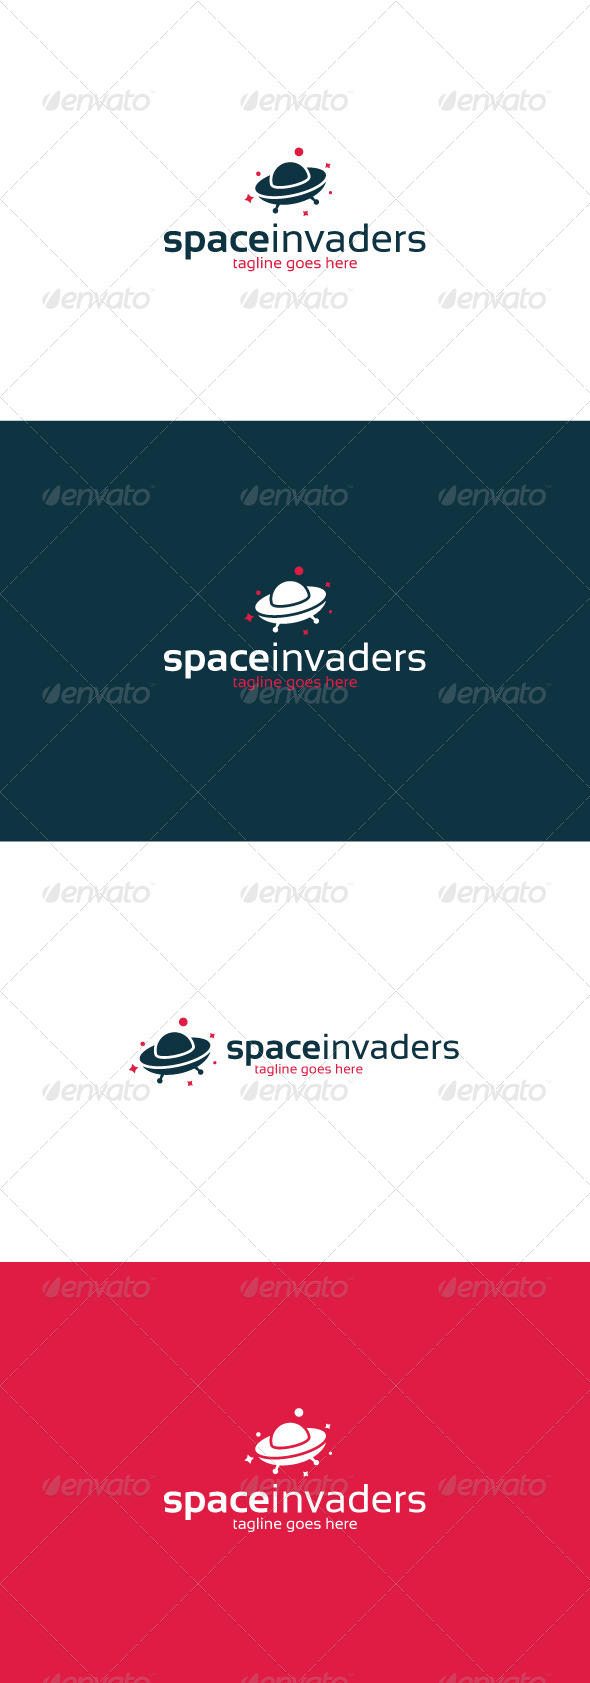 GraphicRiver Space Invaders Logo 8294812